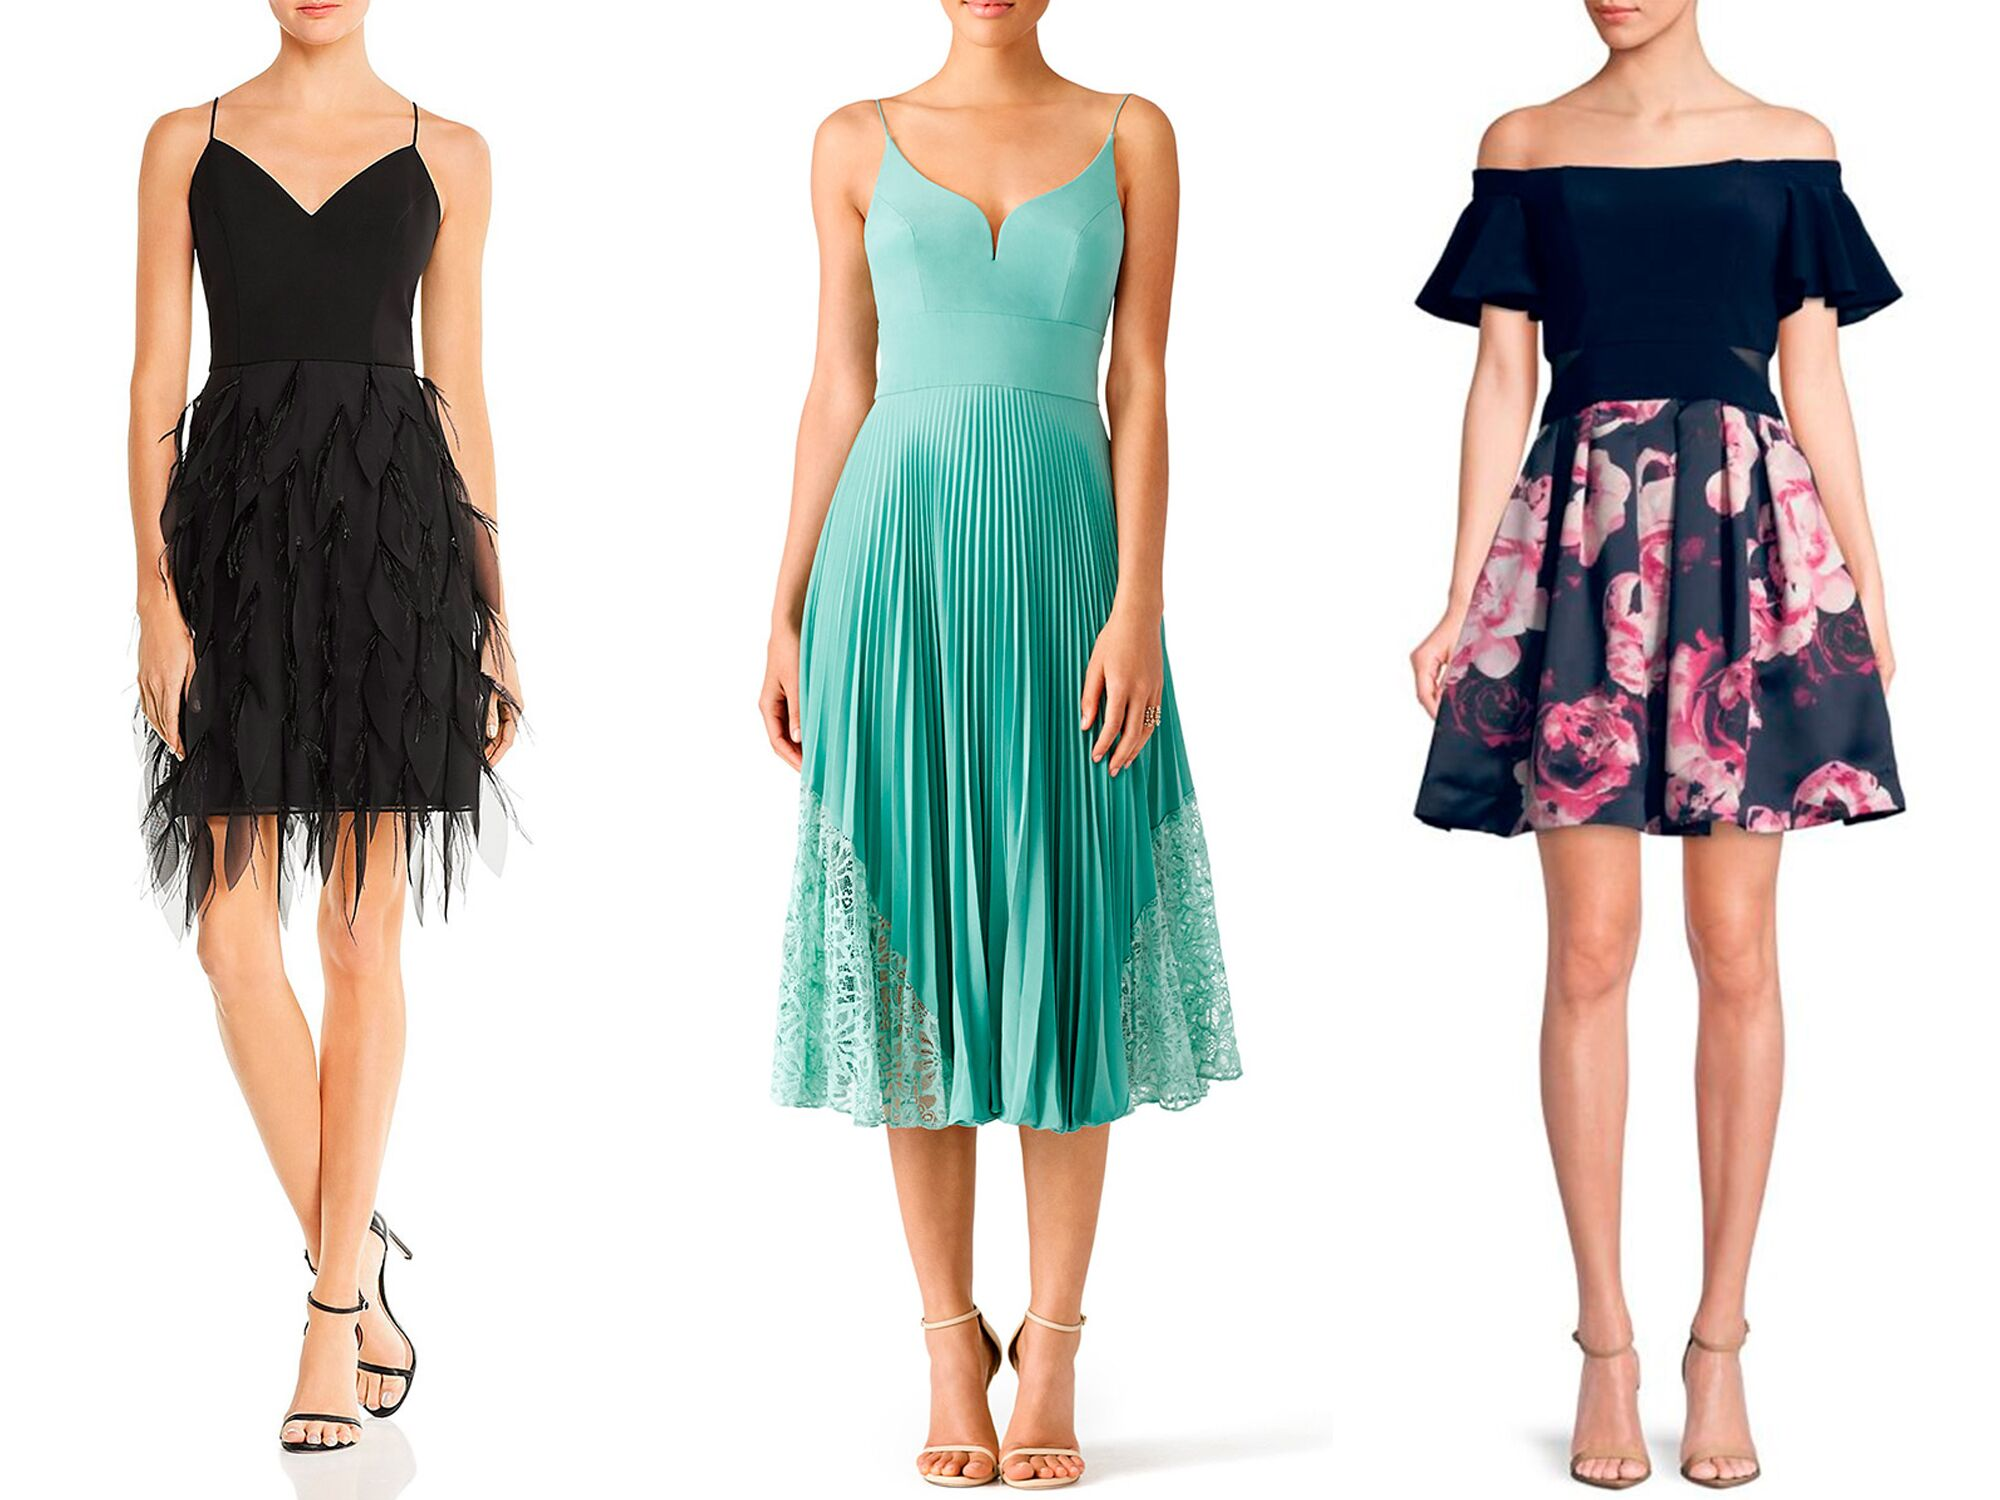 32 Cocktail Dresses To Wear To All Your Weddings This Season